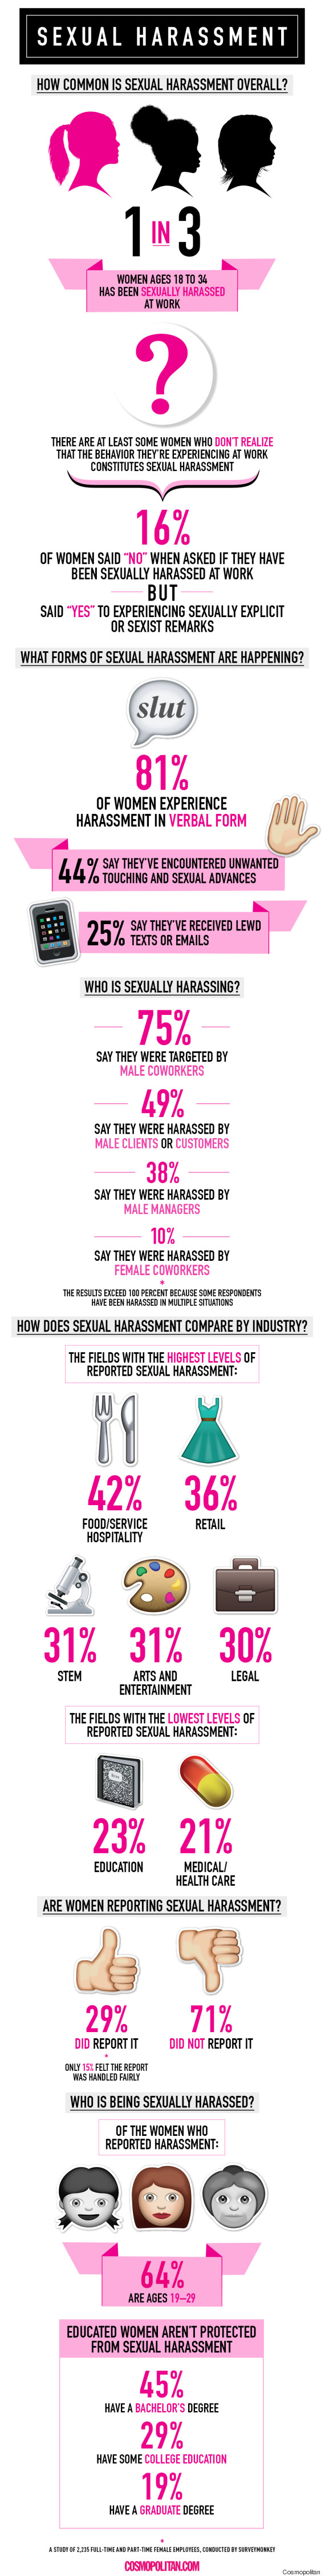 How To Handle Sexual Harassment via DNAMAG